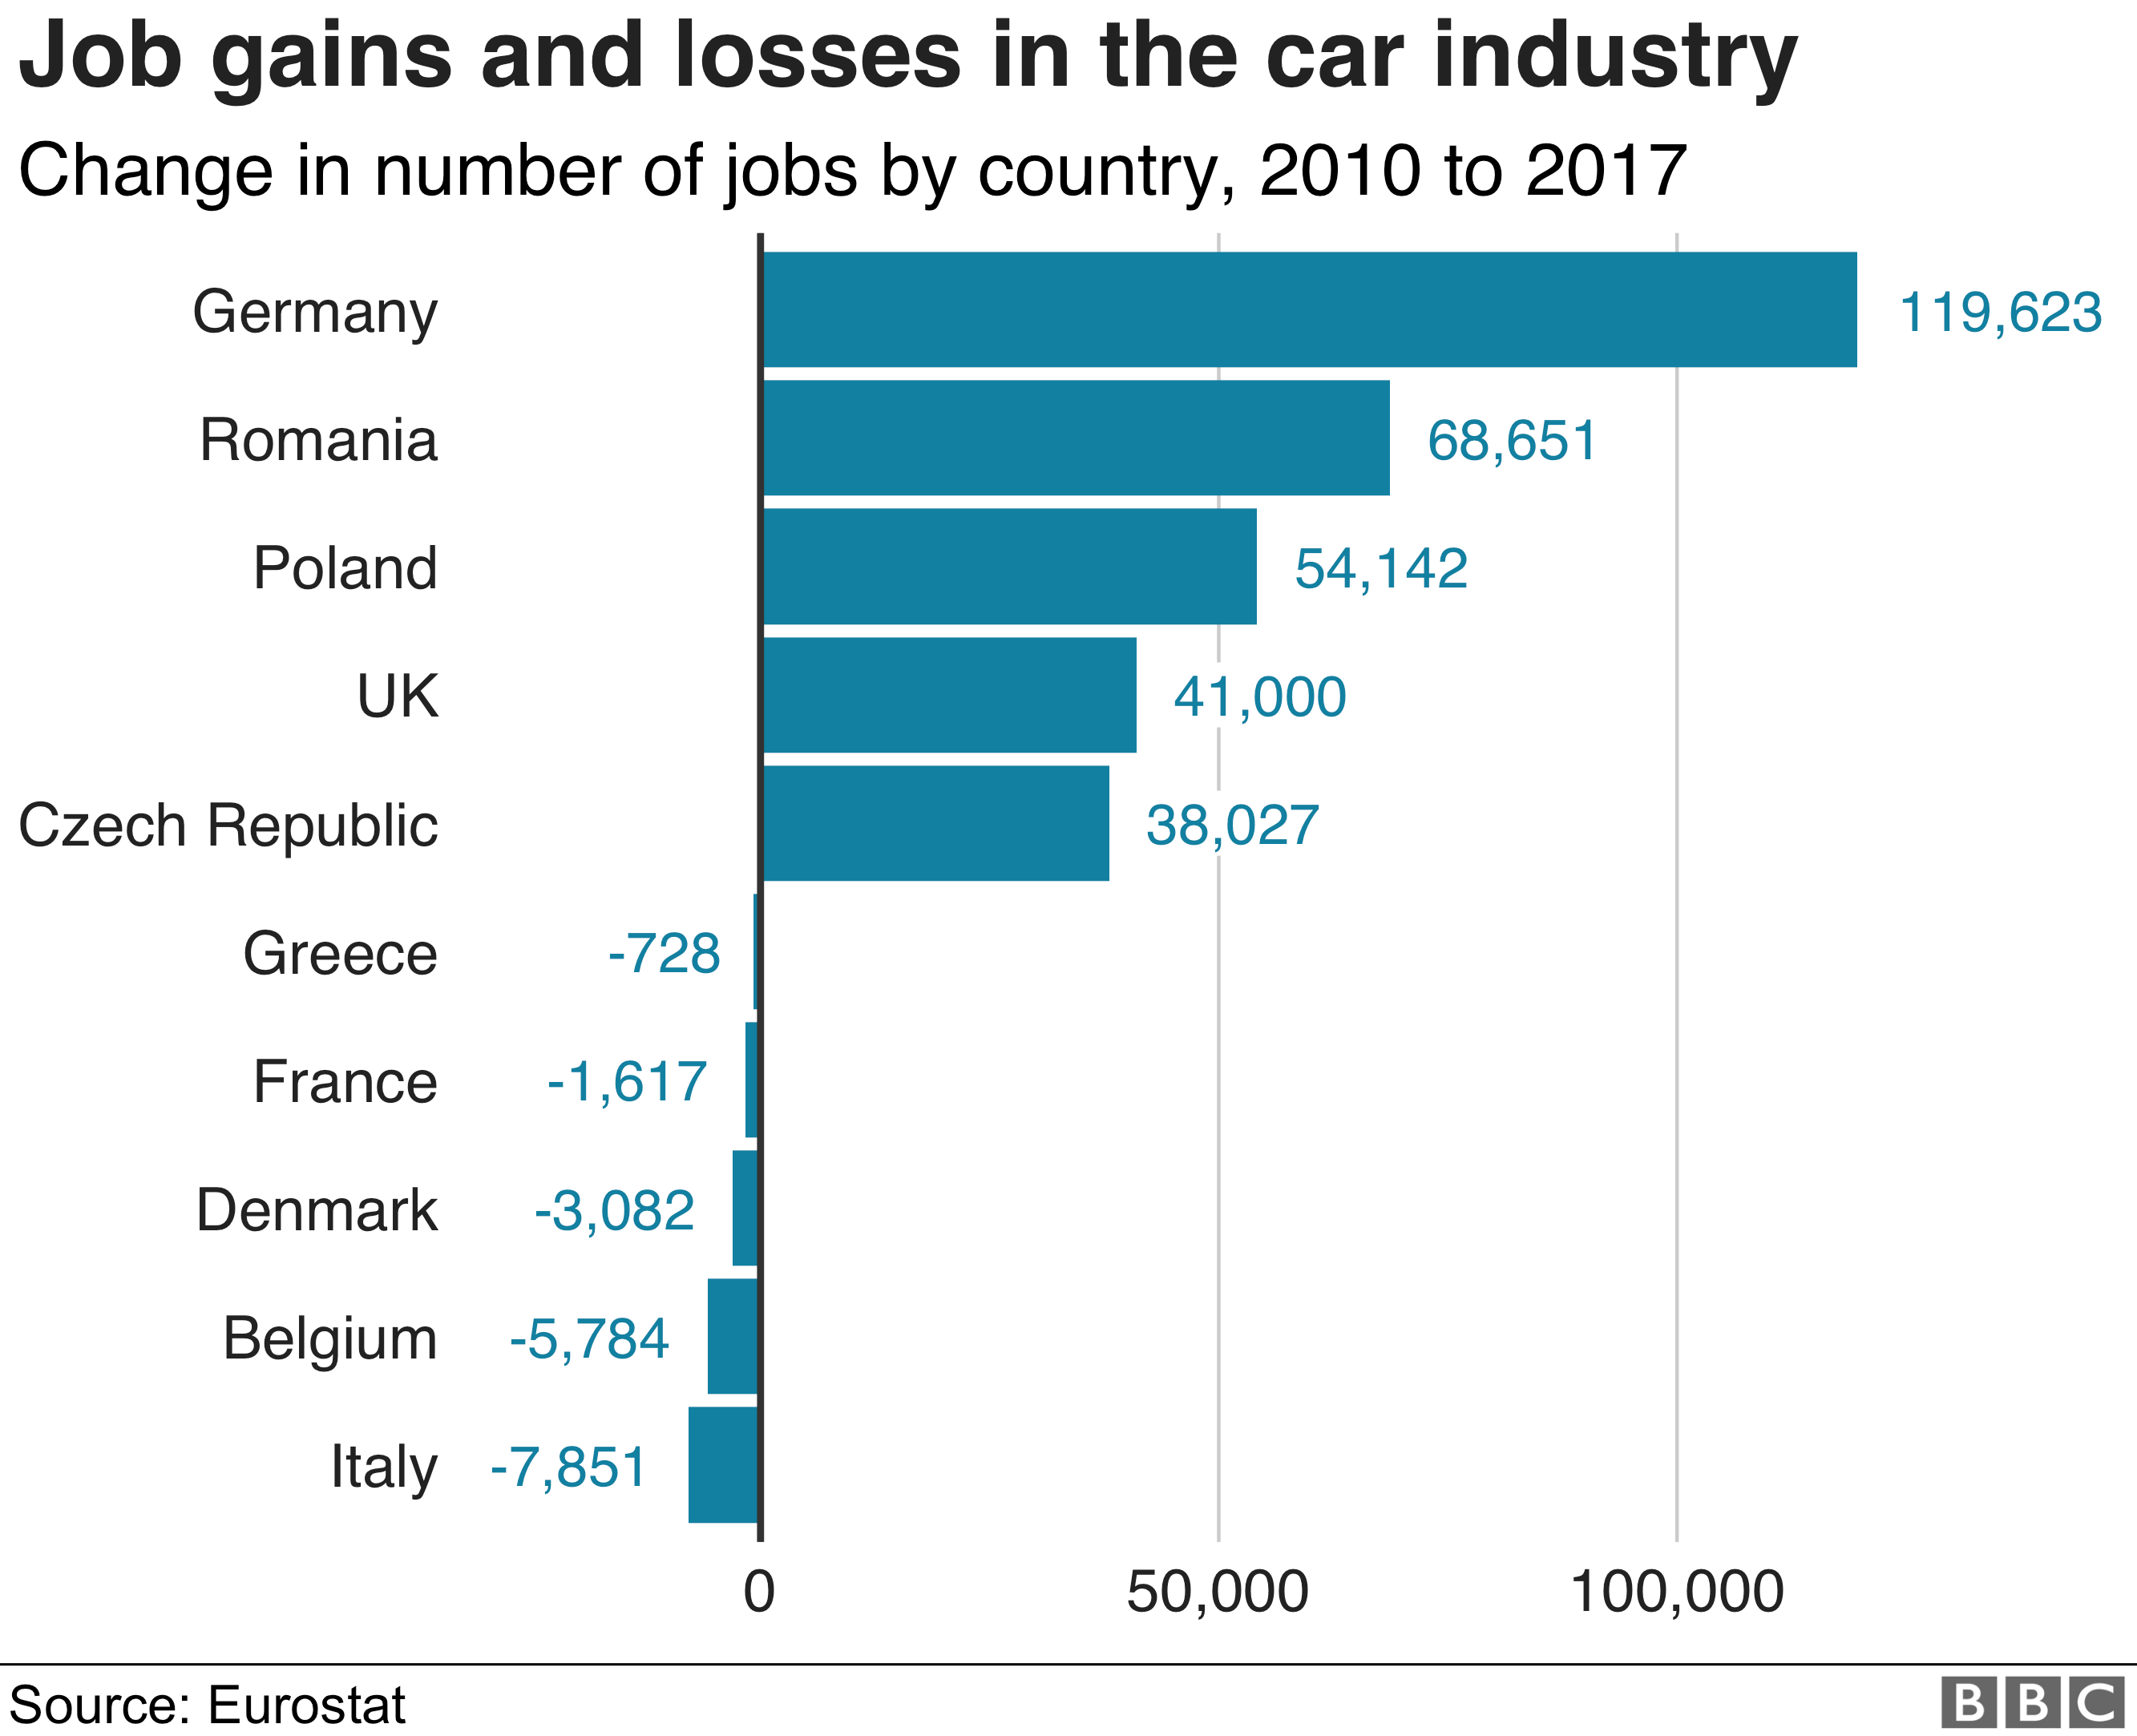 Job gains and losses in the car industry